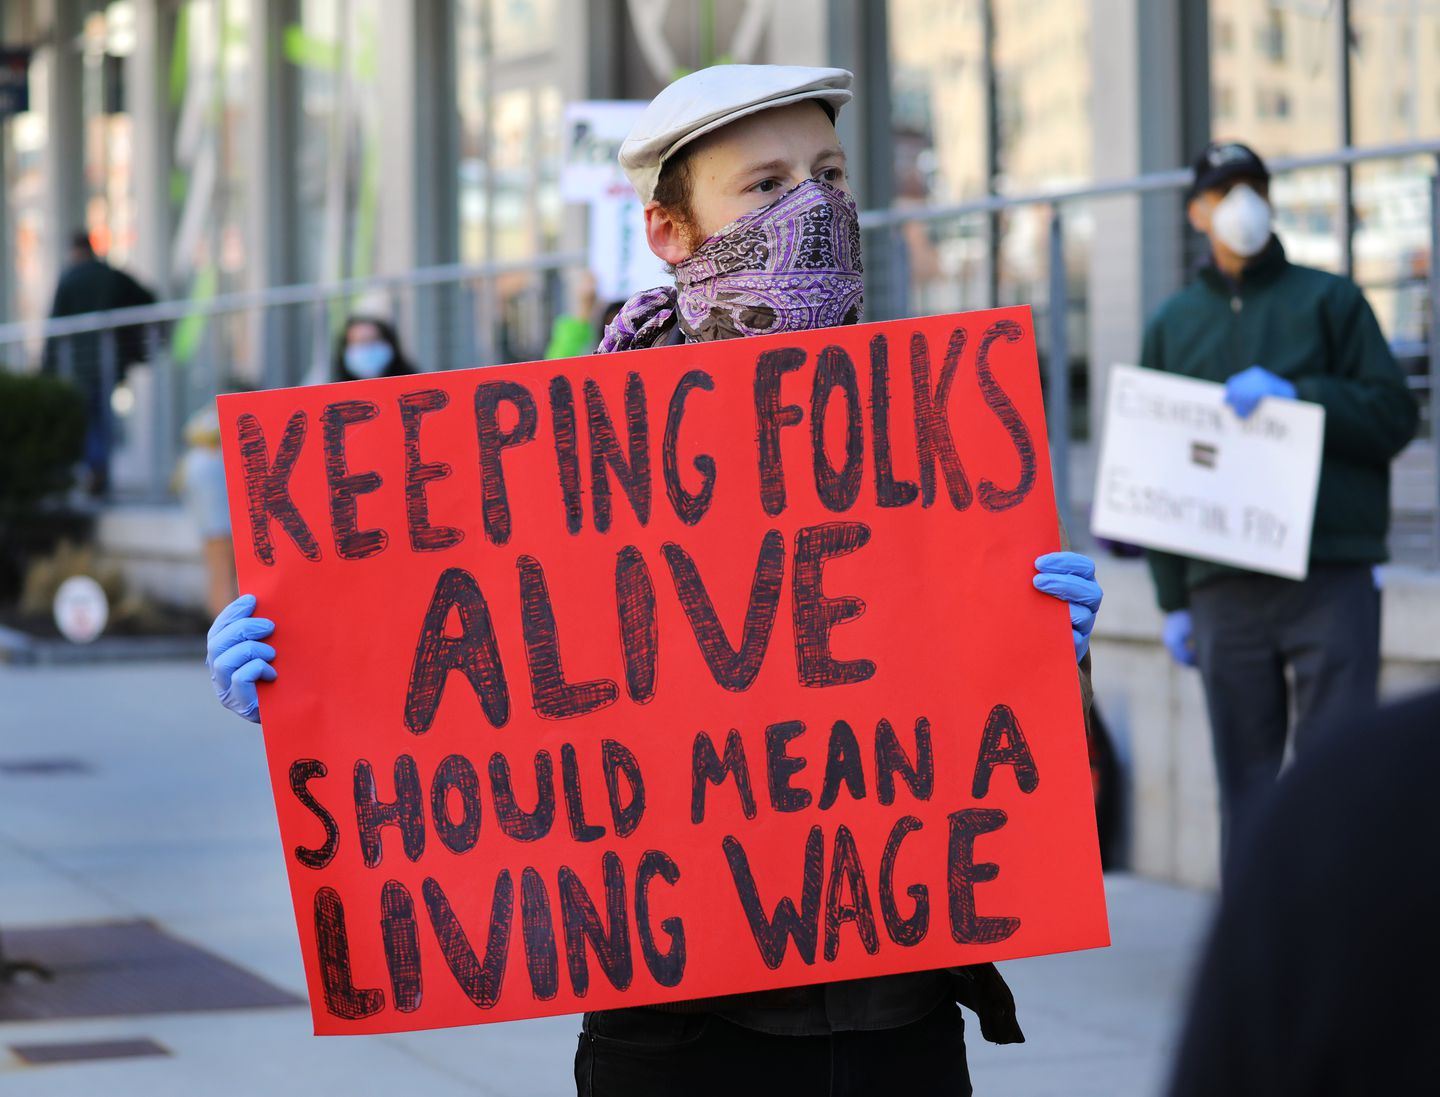 As more grocery store workers die, employees call for better protection - The Boston Globe - 웹